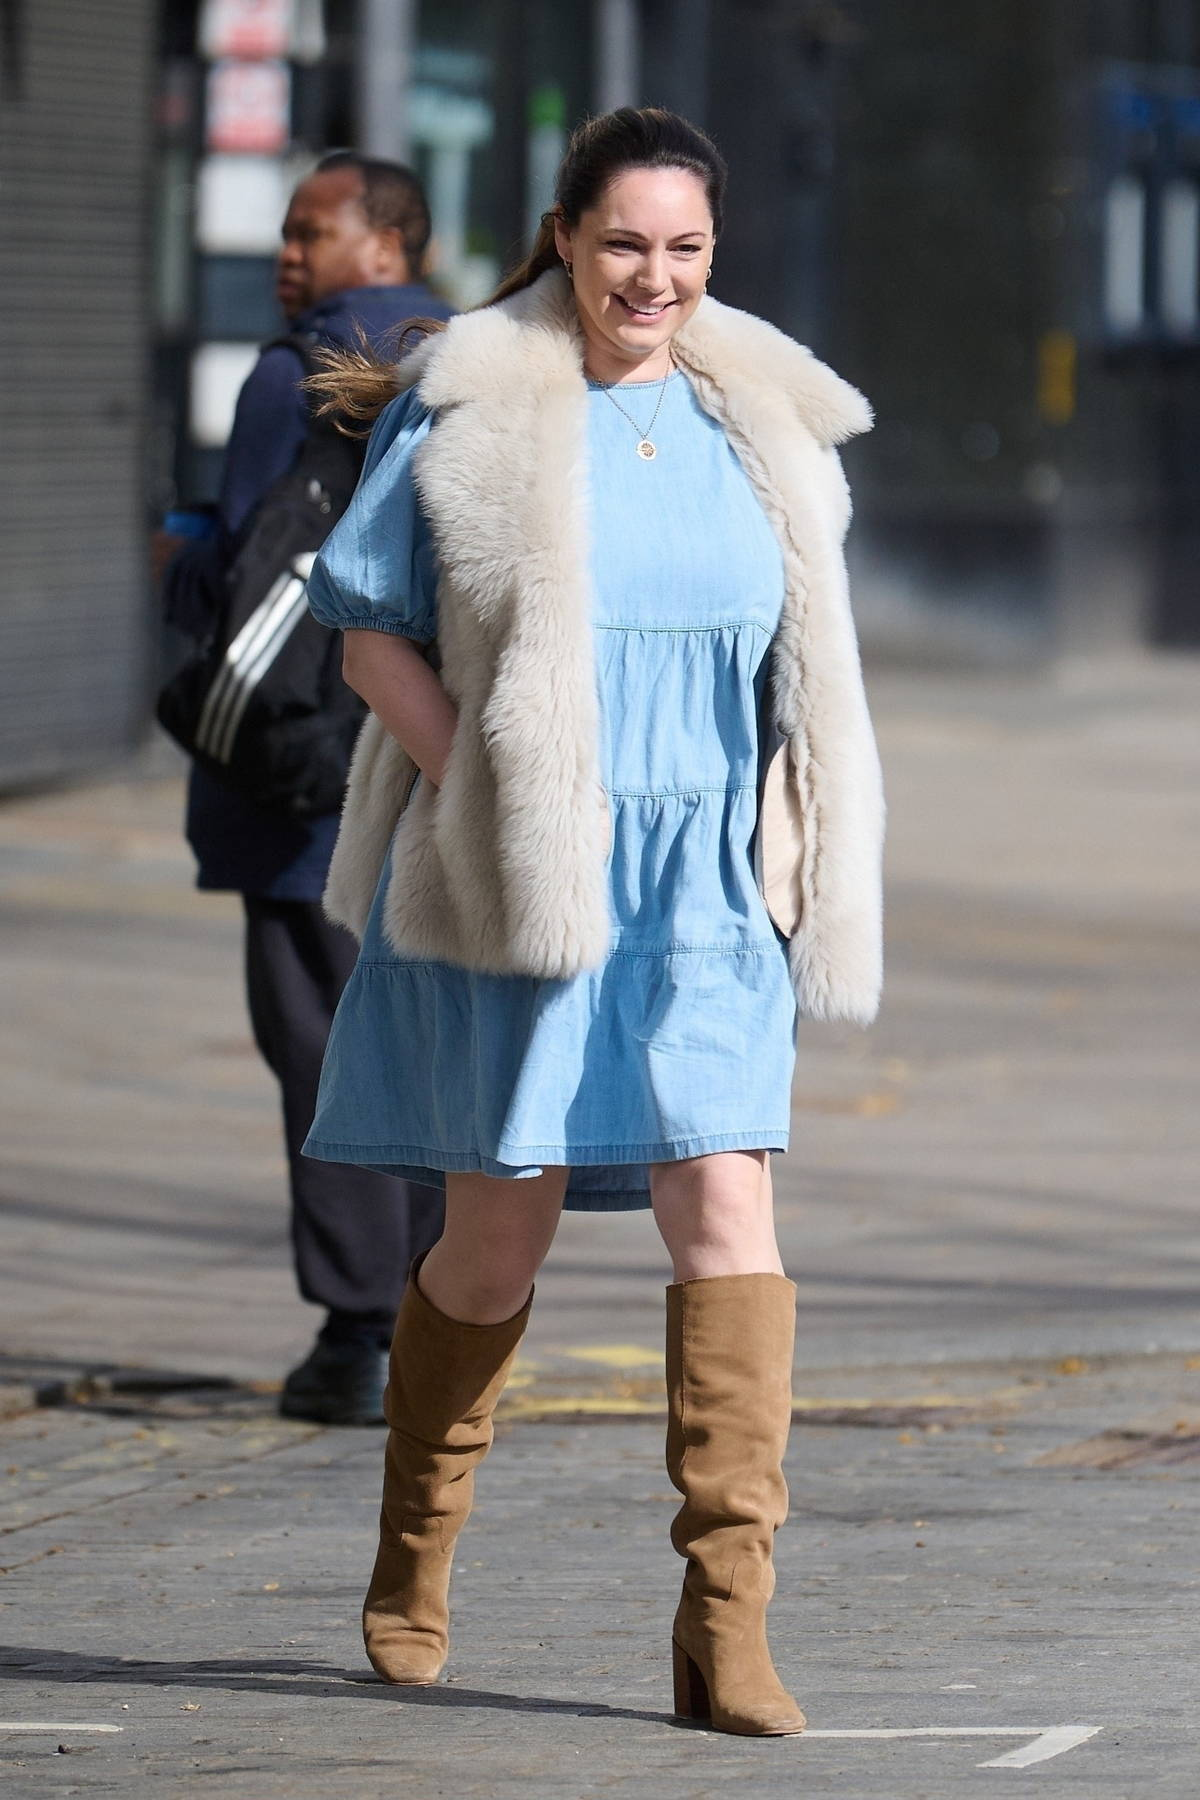 Kelly Brook is all smiles as she leaves Global Radio Studios wearing a blue dress and knee-high suede boots in London, UK